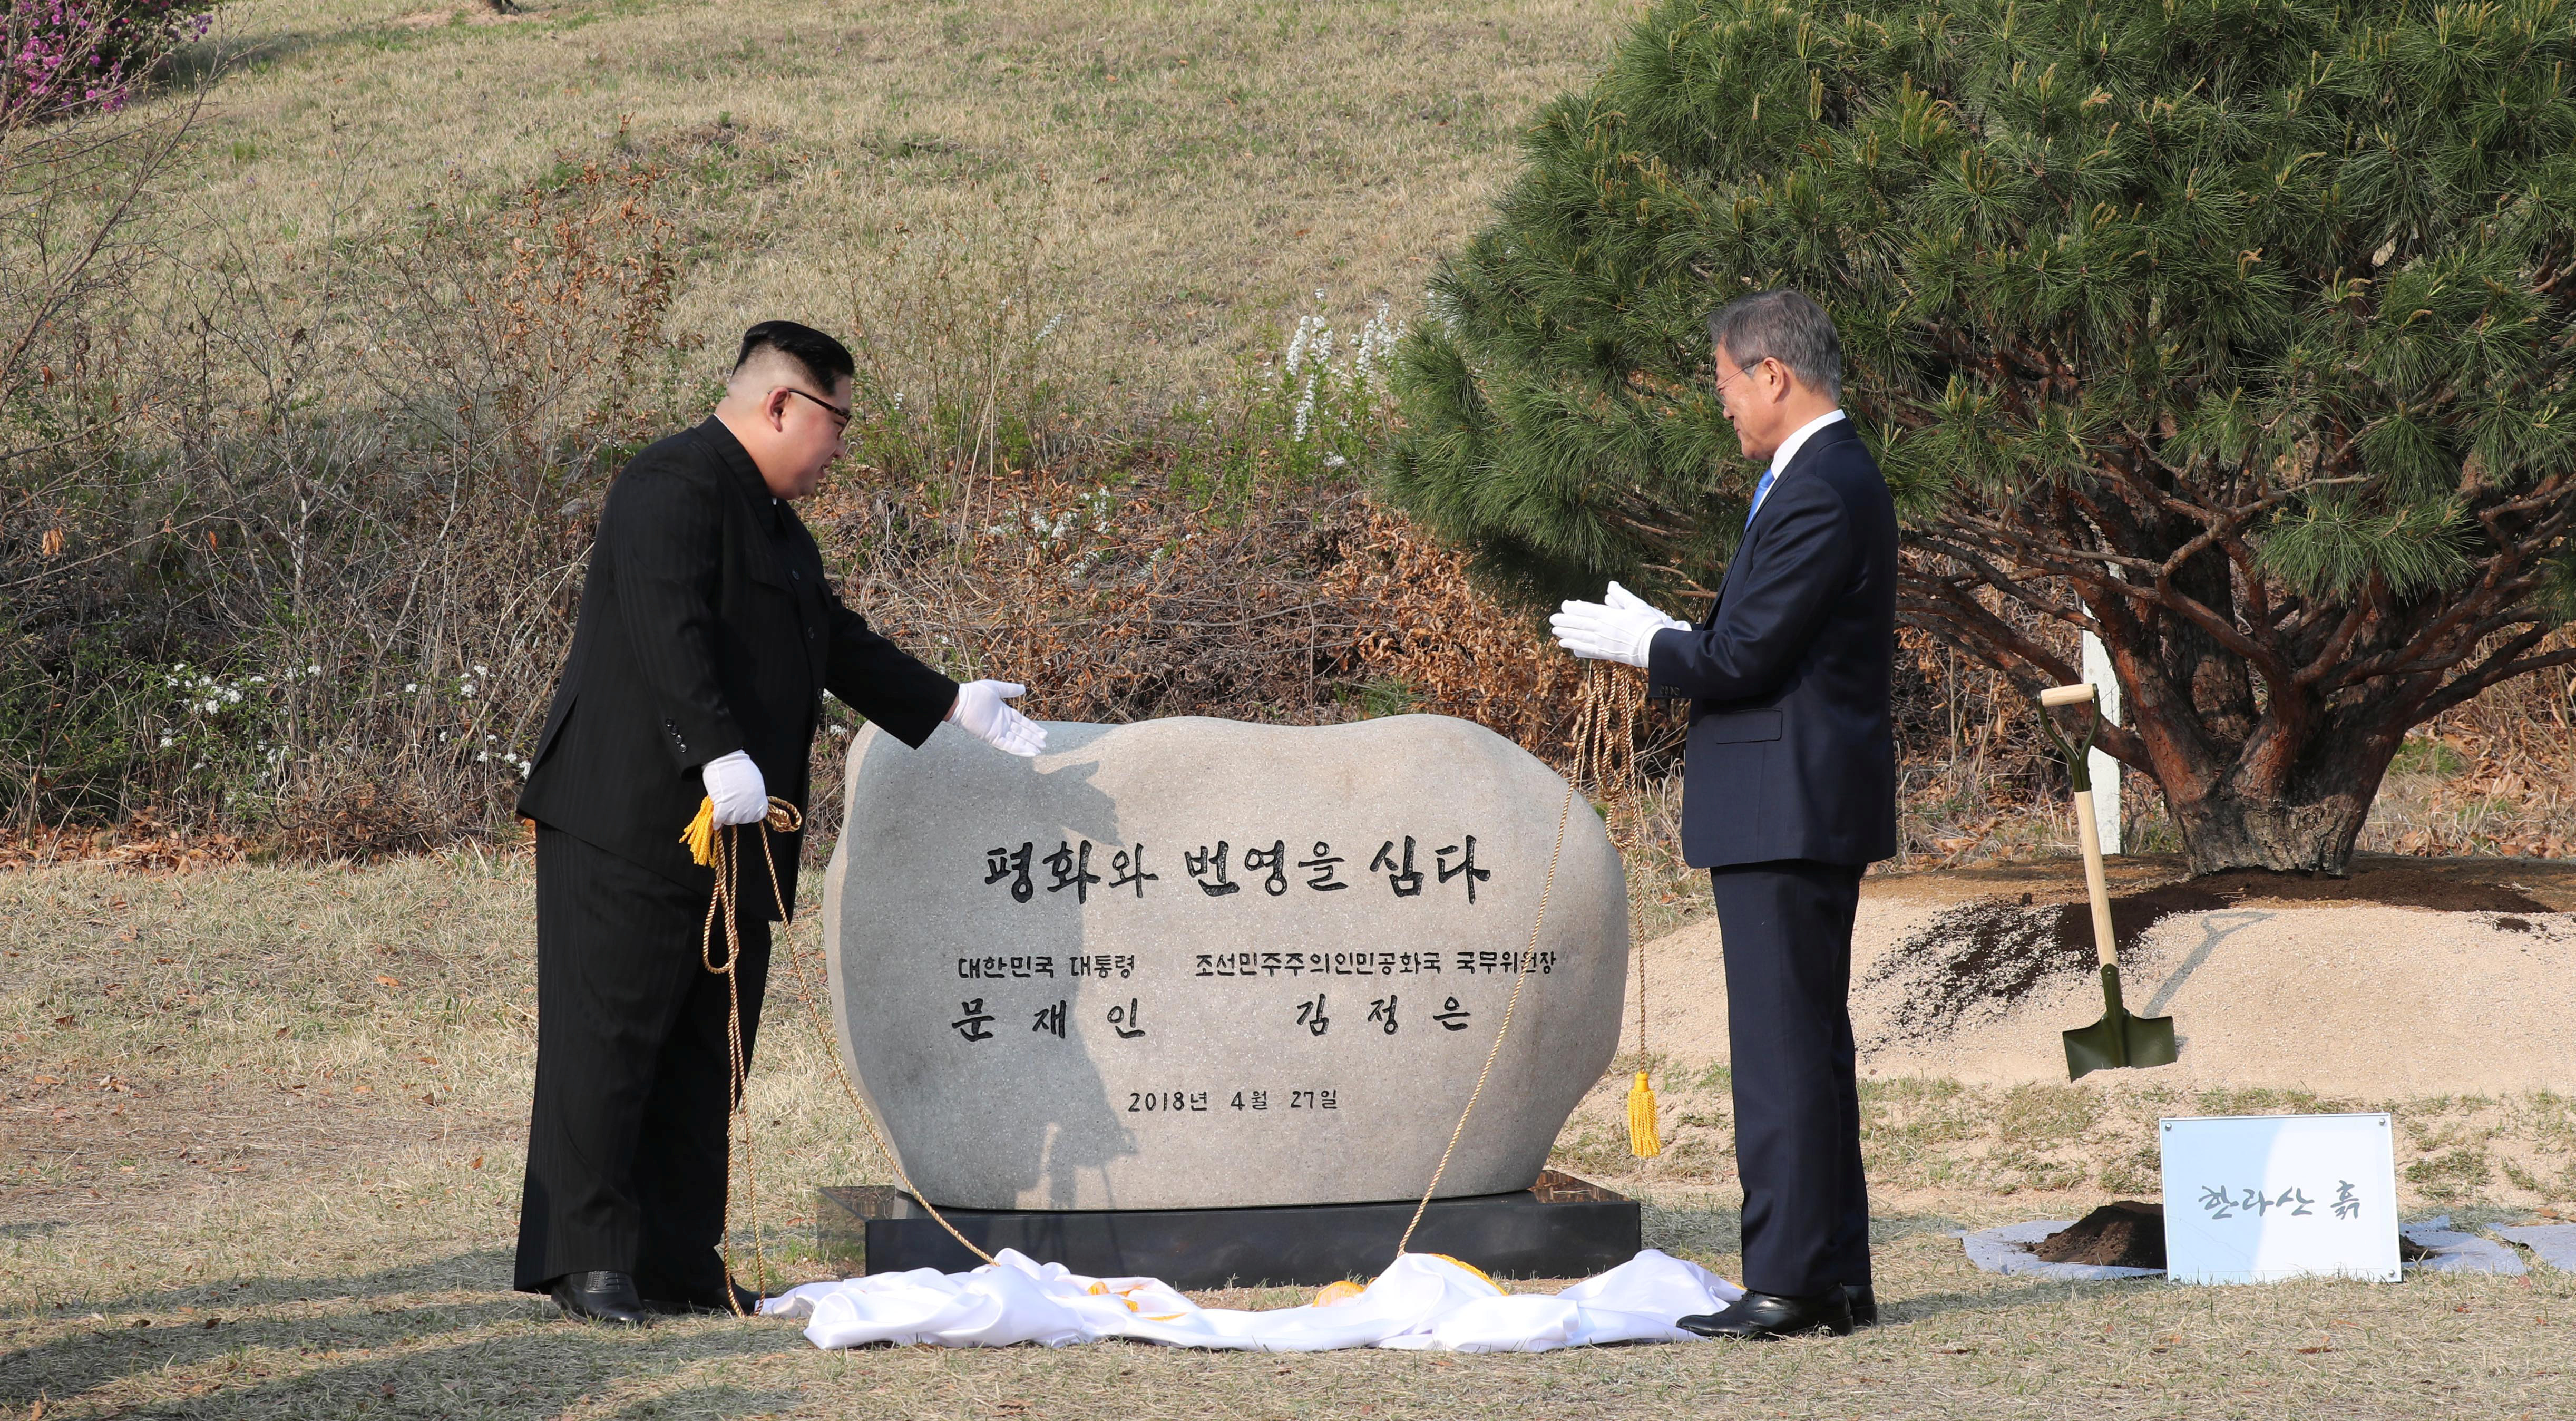 South Korean President Moon Jae-in and North Korean leader Kim Jong Un unveil a plaque at the truce village of Panmunjom inside the demilitarized zone separating the two Koreas, South Korea, April 27, 2018.   Korea Summit Press Pool/Pool via Reuters - RC12CC5573D0